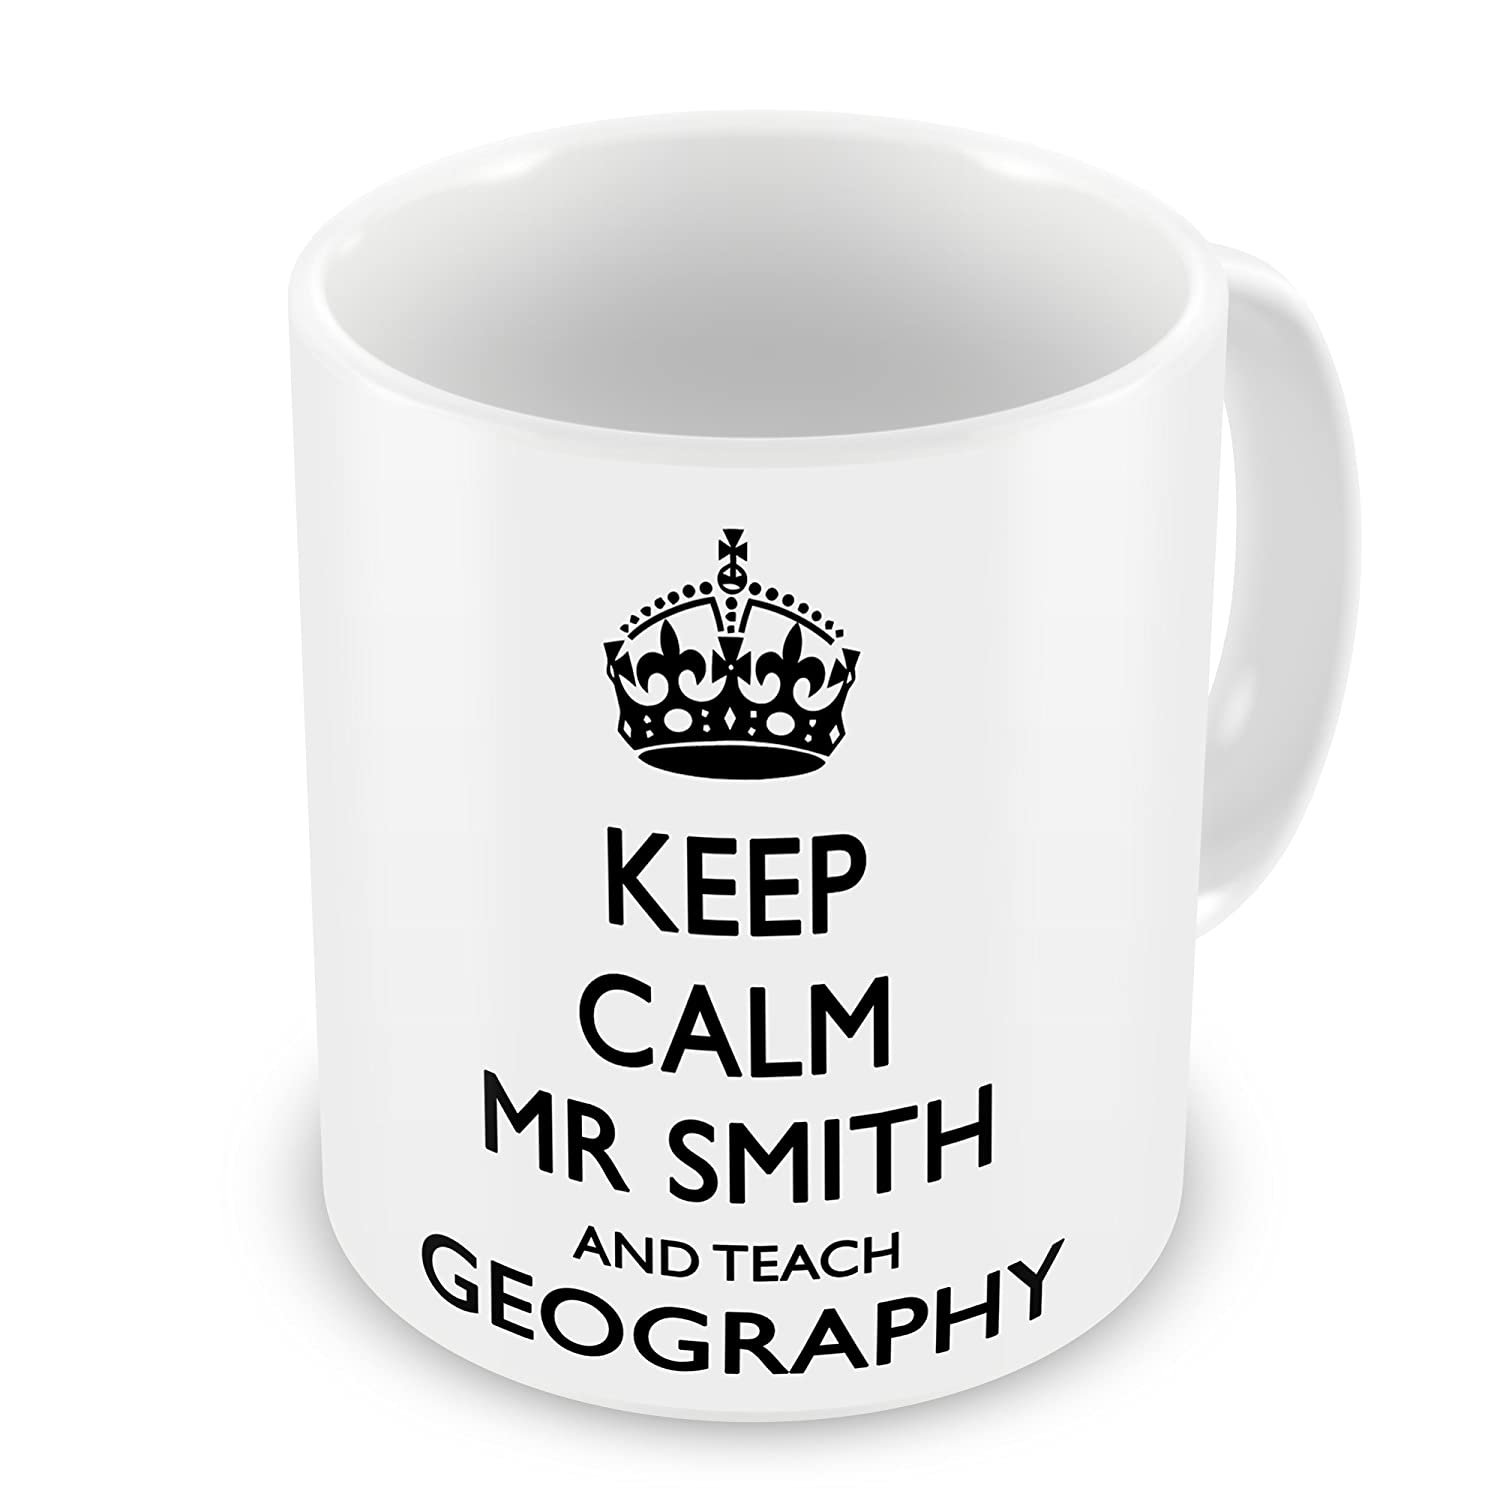 232b2174f07 Keep Calm And Teach Geography Personalised Gift Mug  Amazon.co.uk  Garden    Outdoors